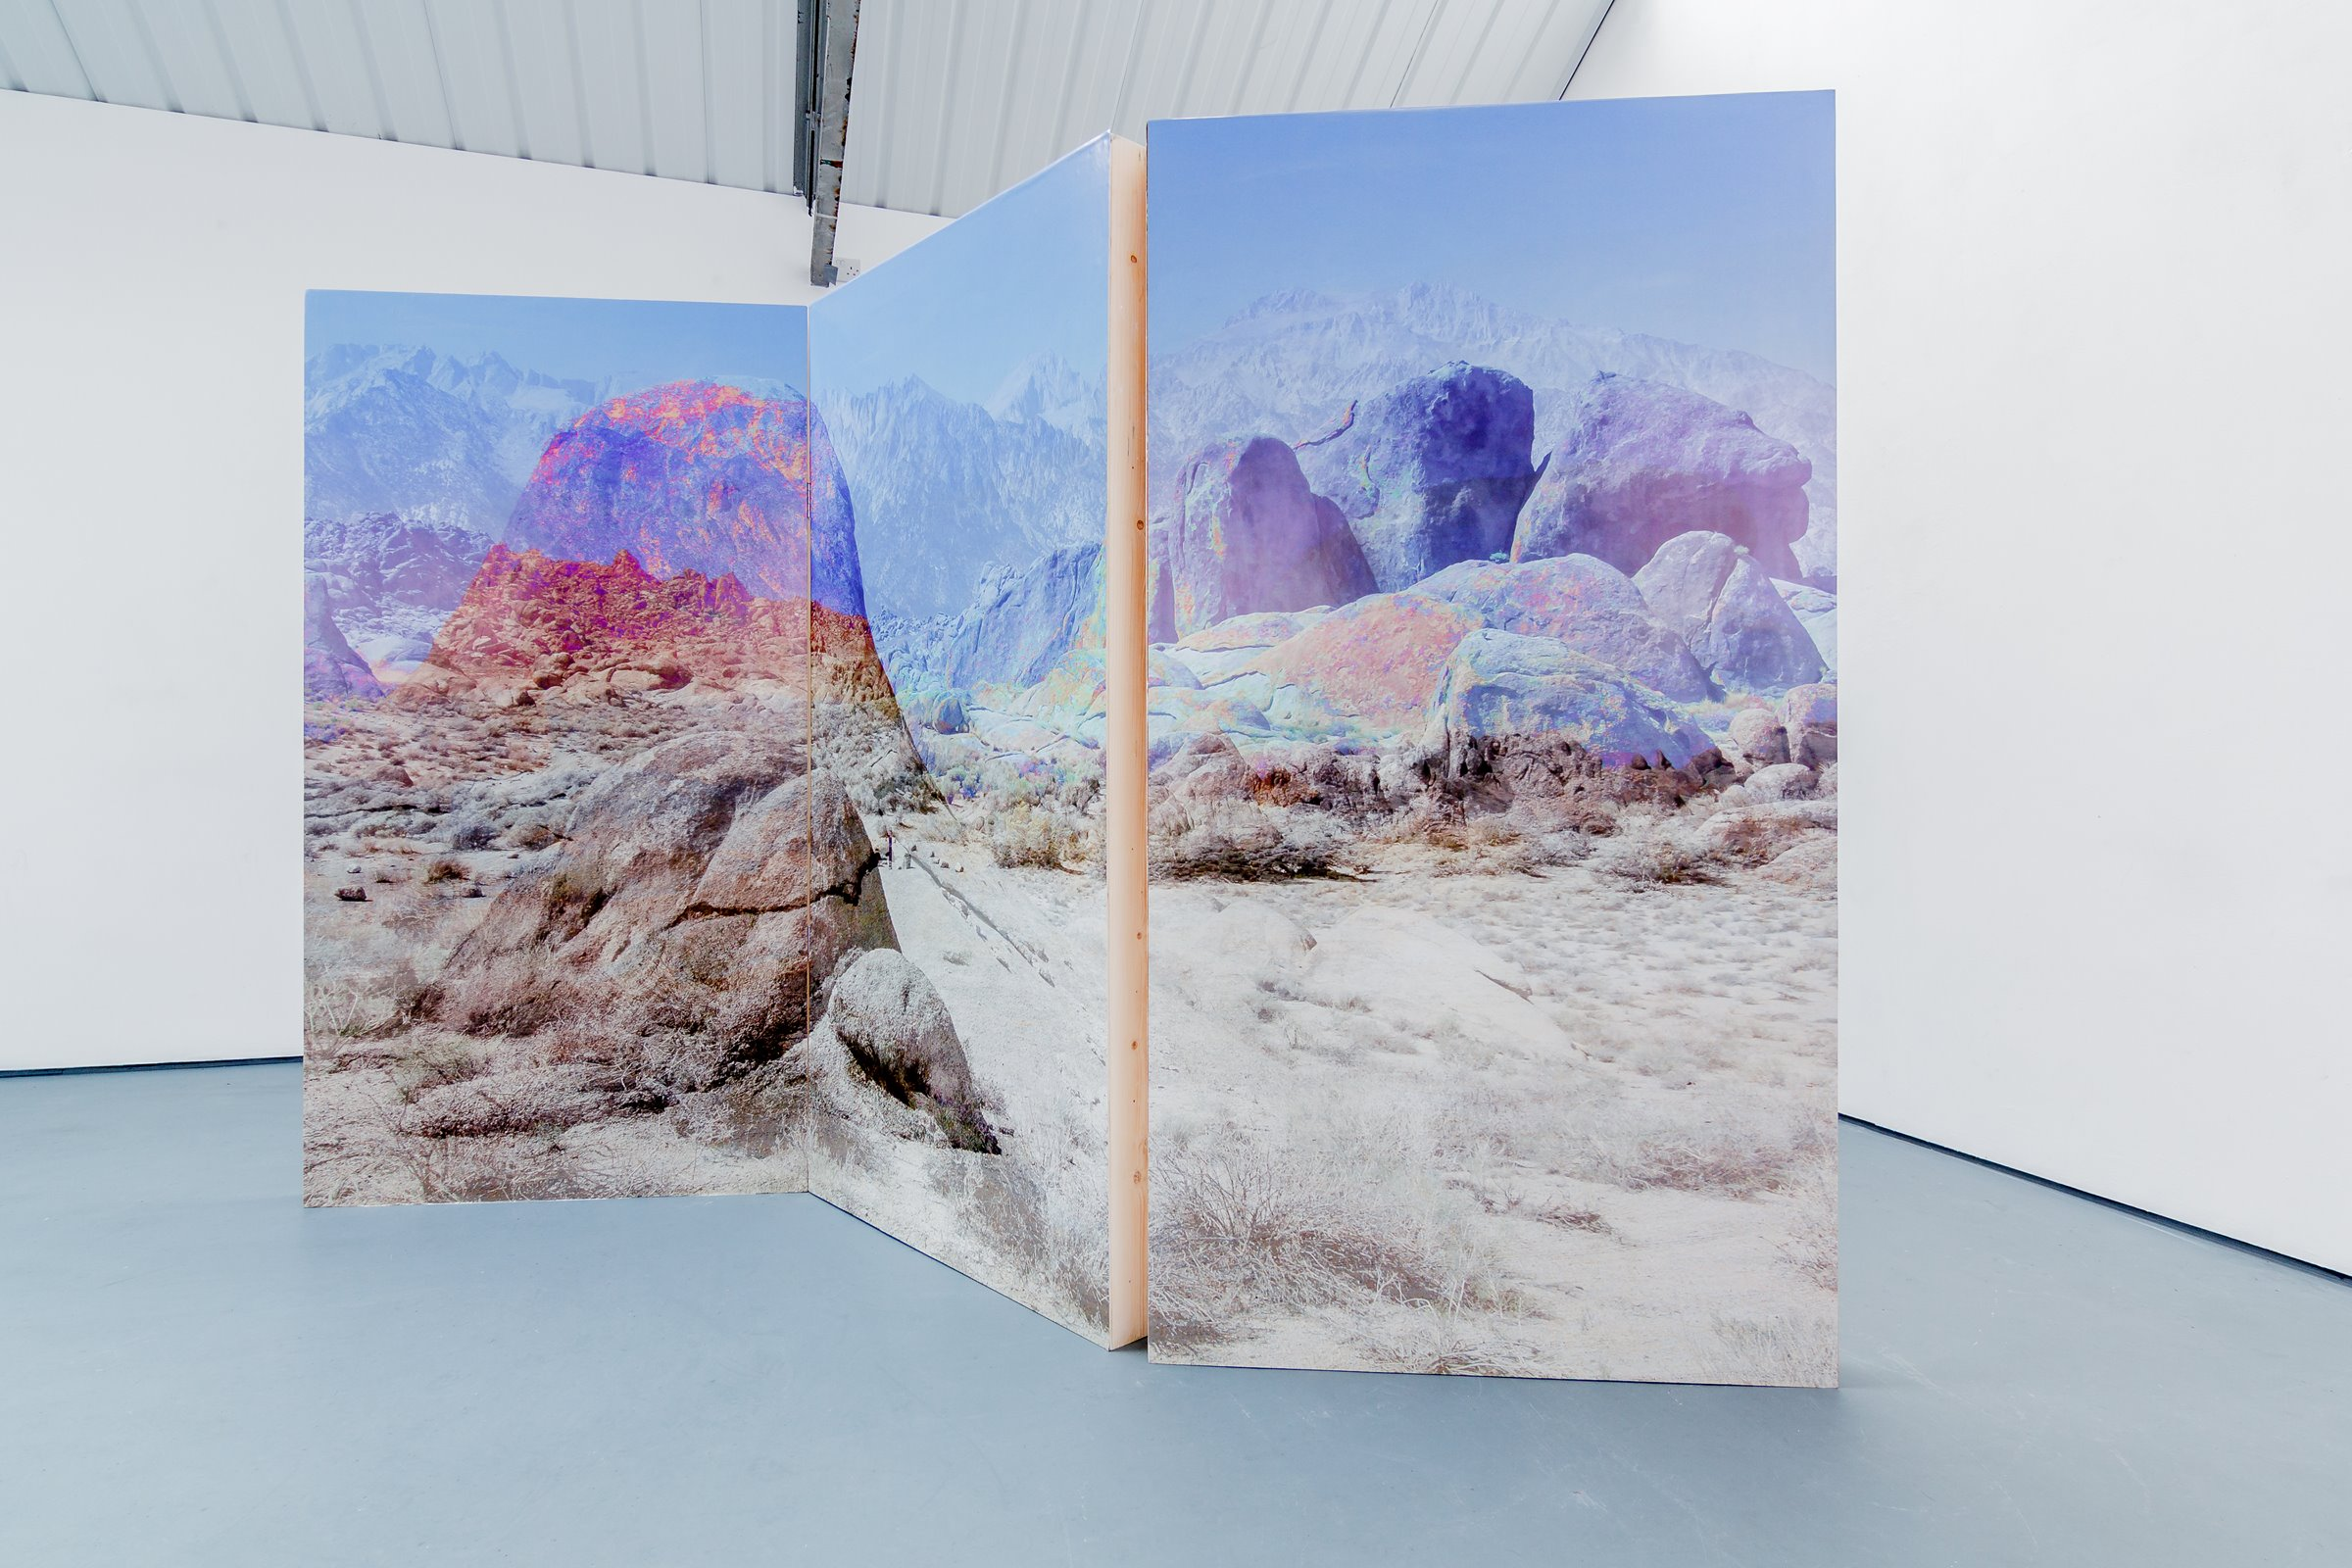 Scenery I (2015)  Sculpture Series – Digital photograph mounted on to wooden screens. Dimensions Variable.  Exhibited at: Chiara Williams Contemporary Art, London Art Fair 17th to 22nd January, 2017. Airspace Gallery 5th May to 3rd June, 2017.